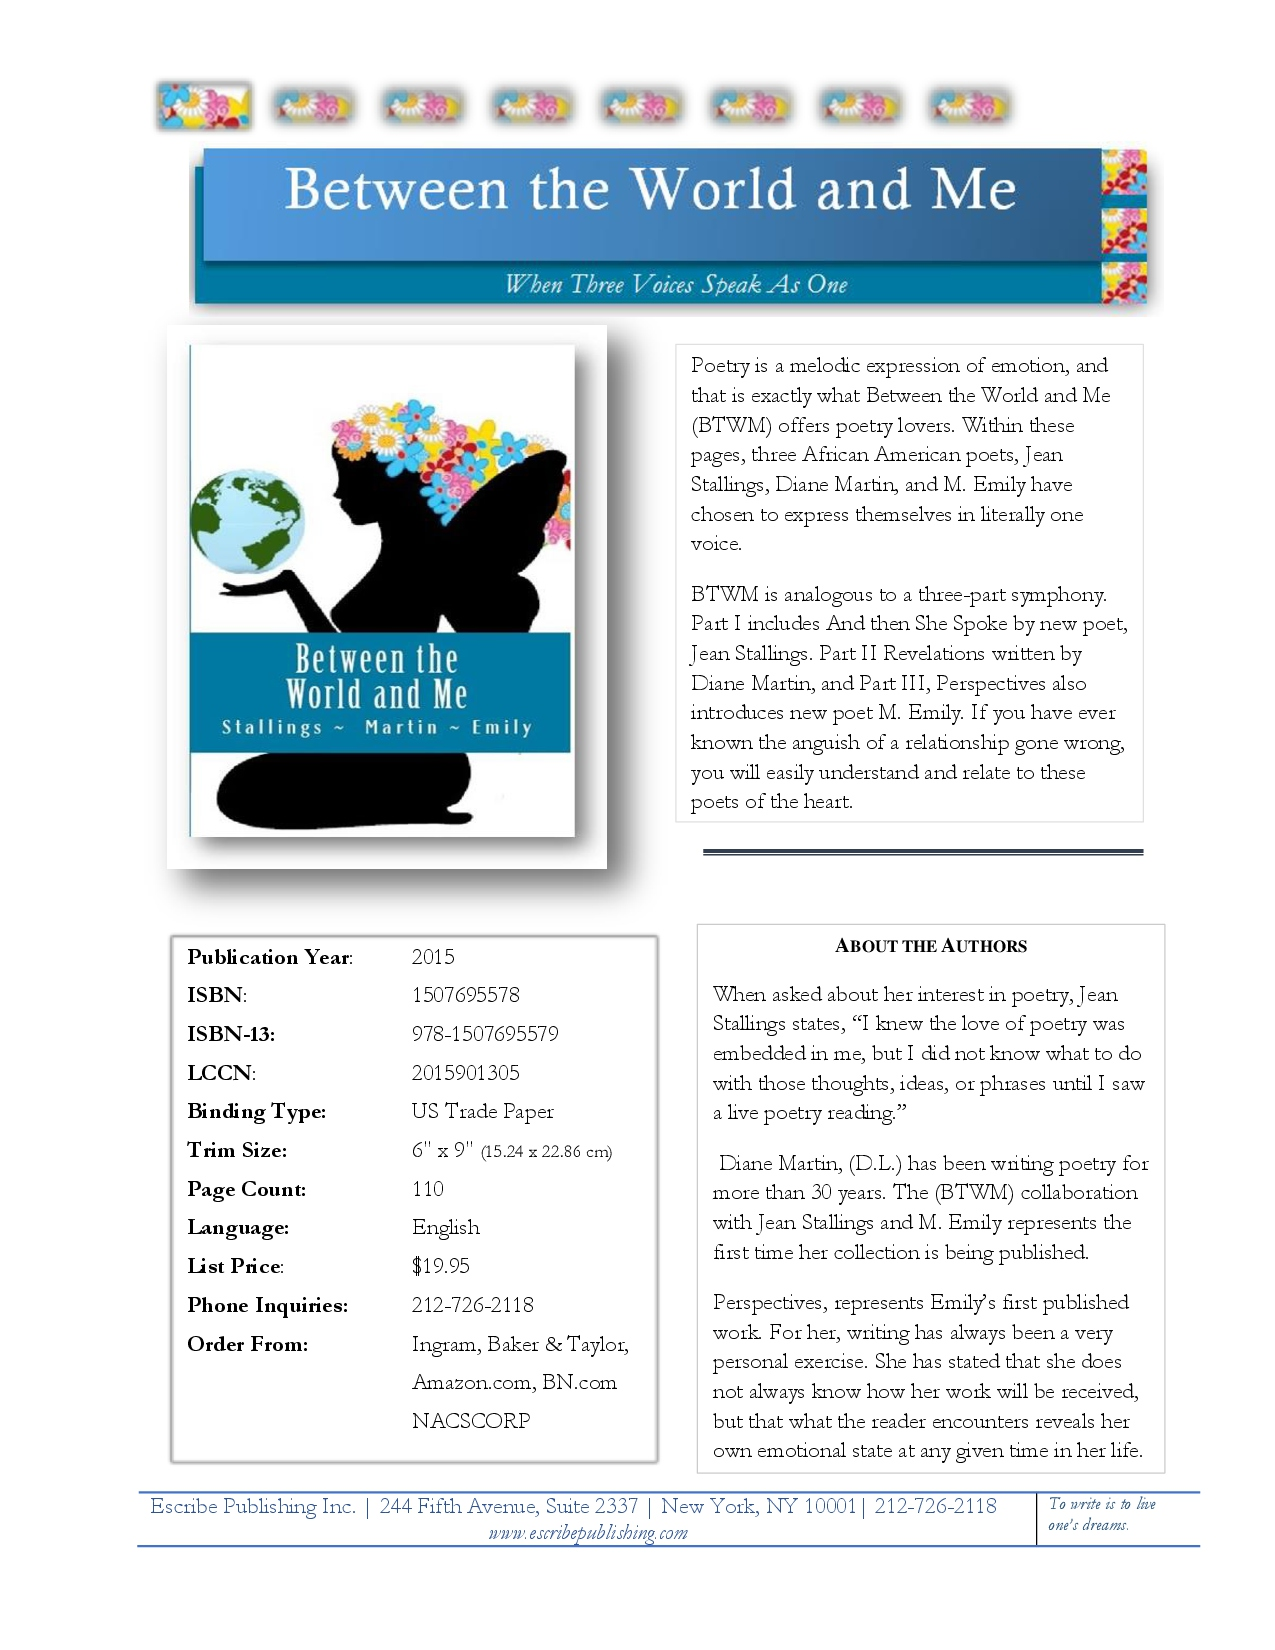 BETWEEN THE WORLD AND ME SELL SHEET-1